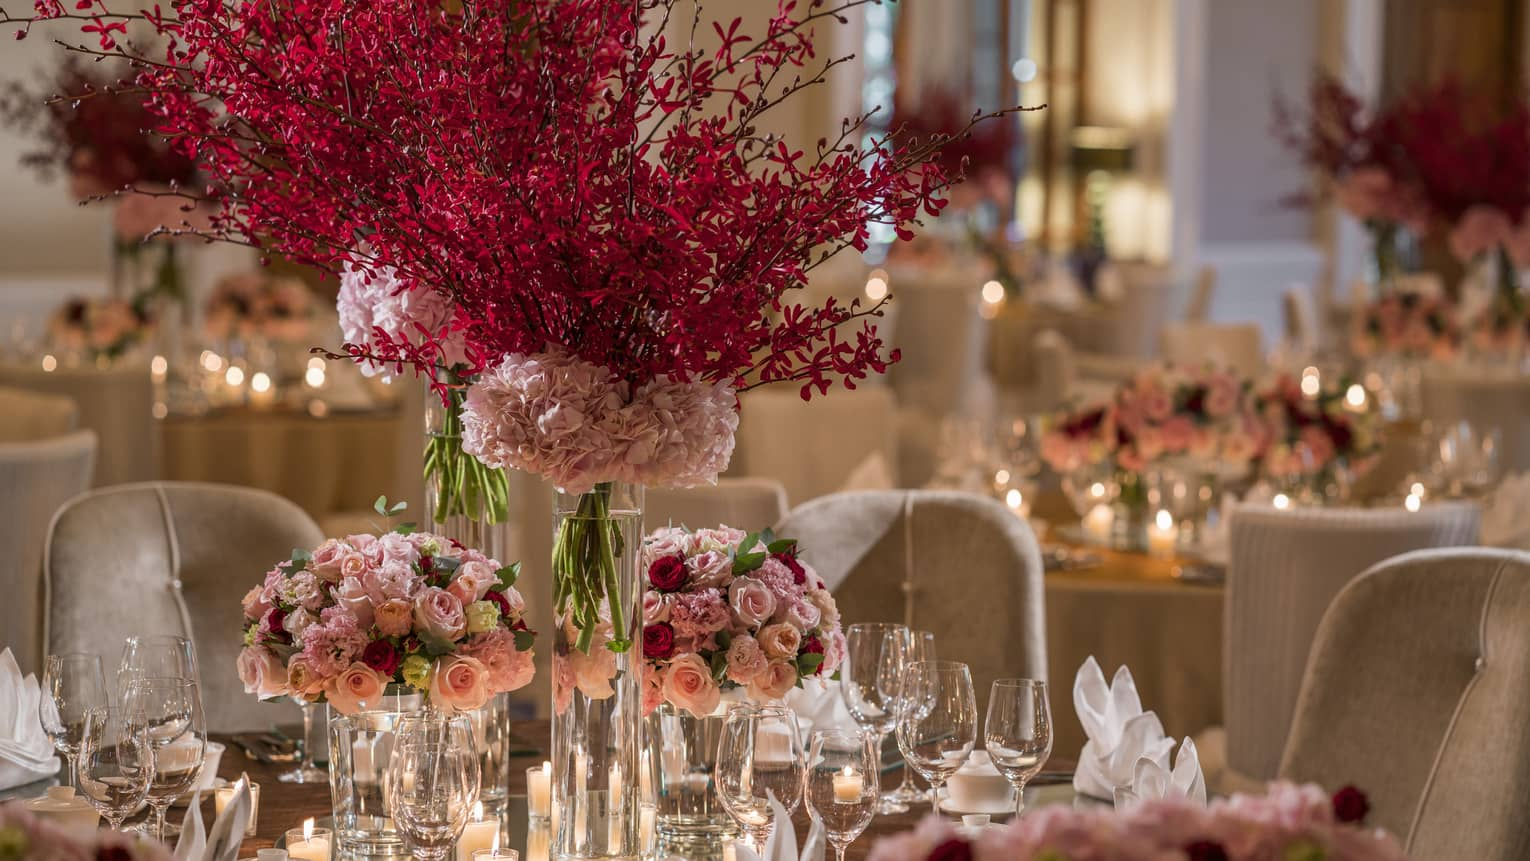 Pink and red bouquets of flowers and candles serve as the centerpiece for a dining arrangement